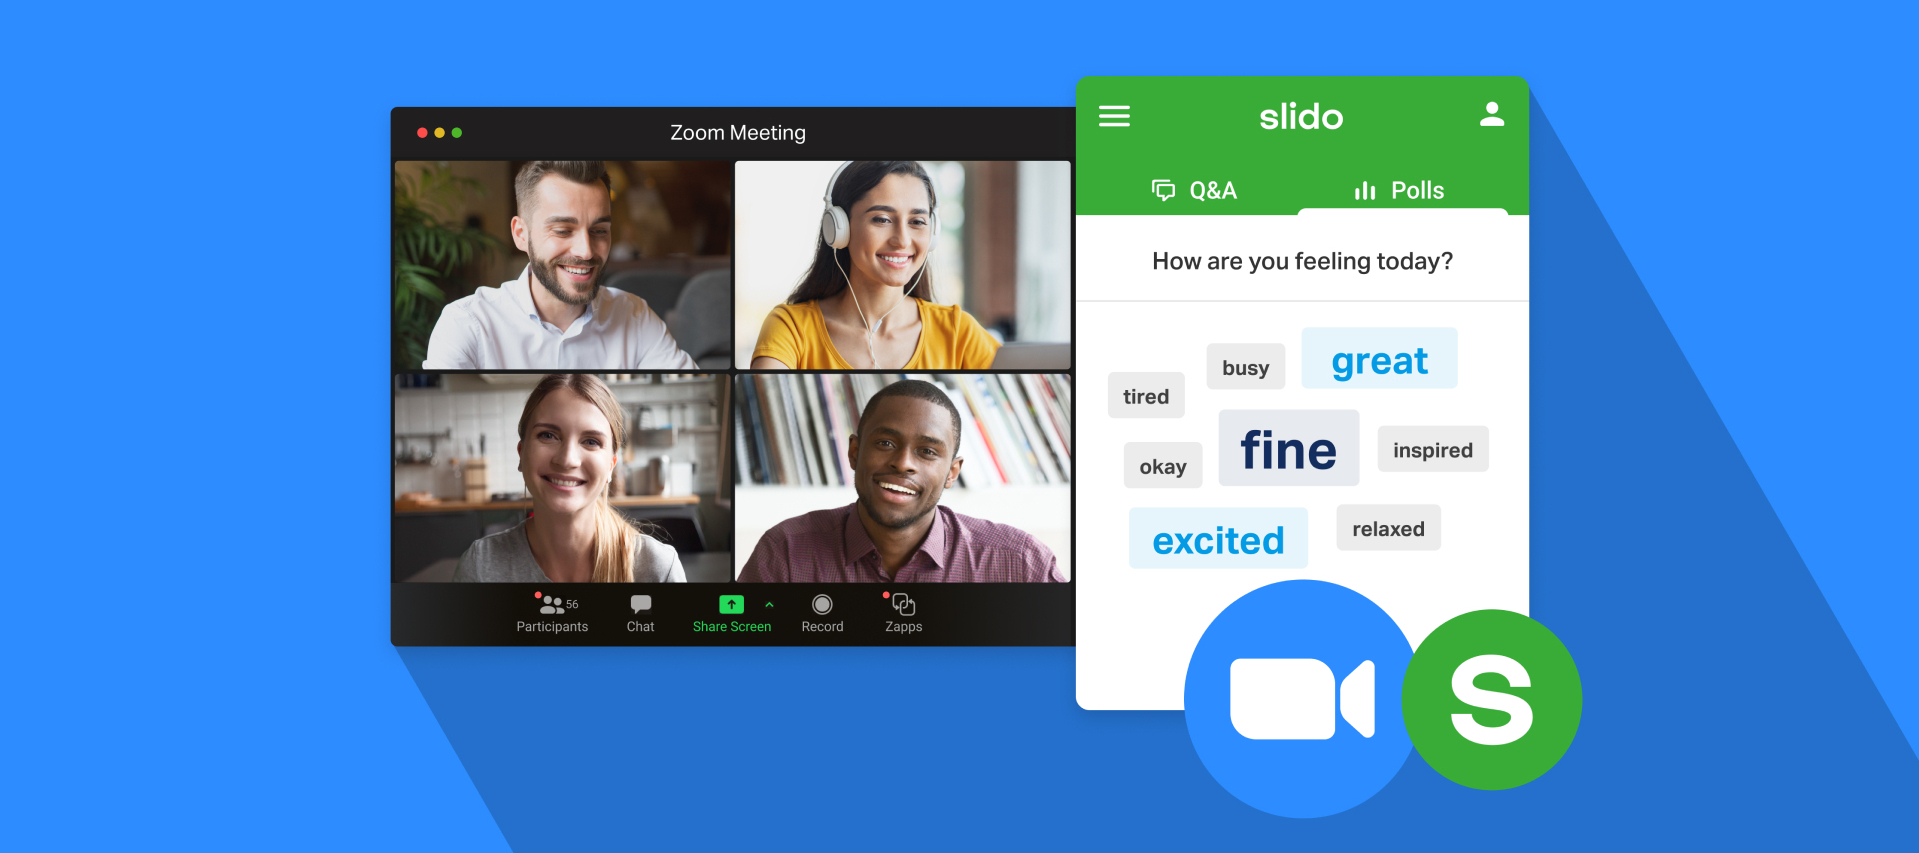 Slido Teams up With Zoom to Bring More Interaction to Your Online Meetings